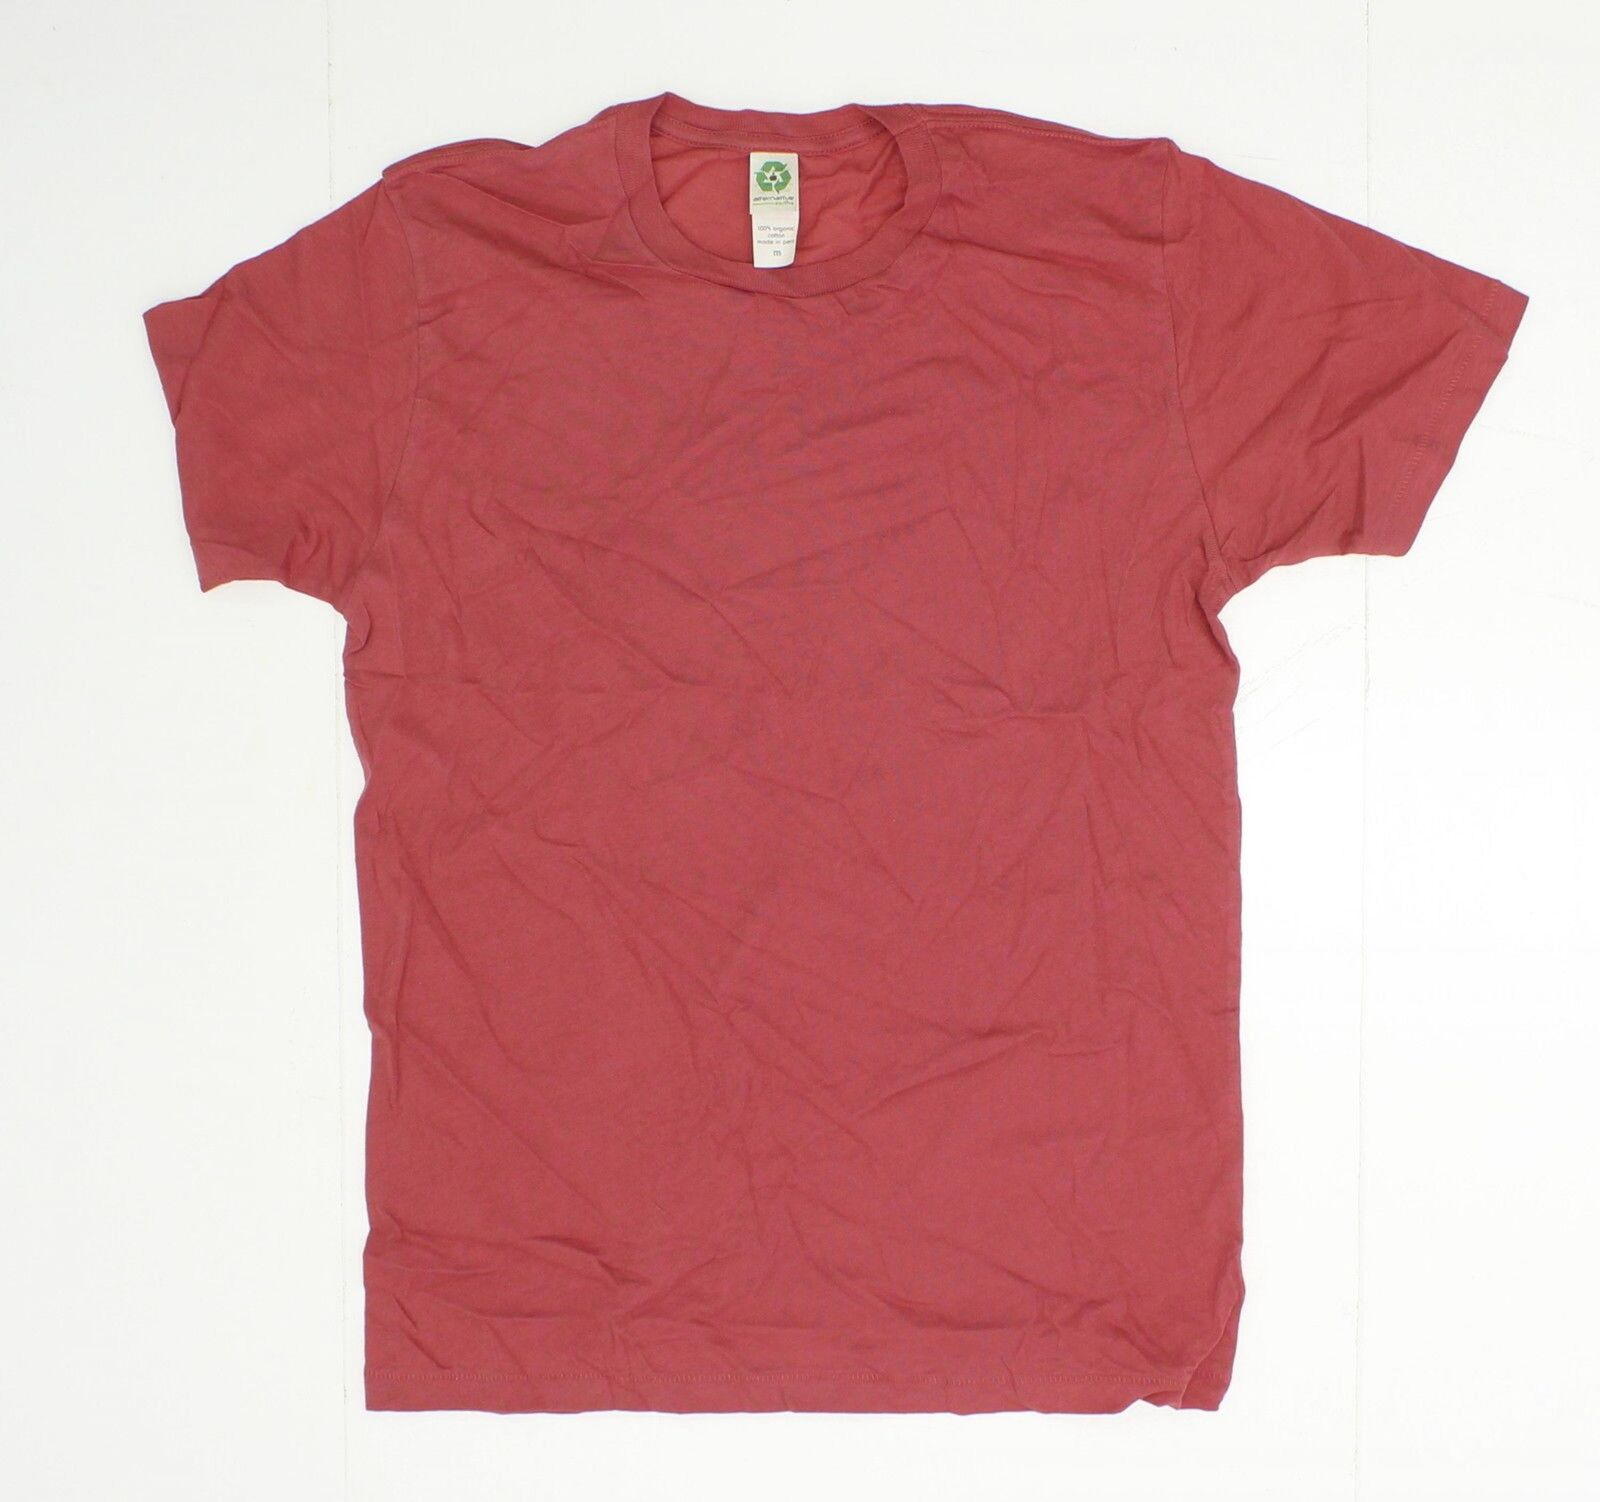 new B/_Envied Ladies Junior Fit Cropped Scoop Neck T-Shirt